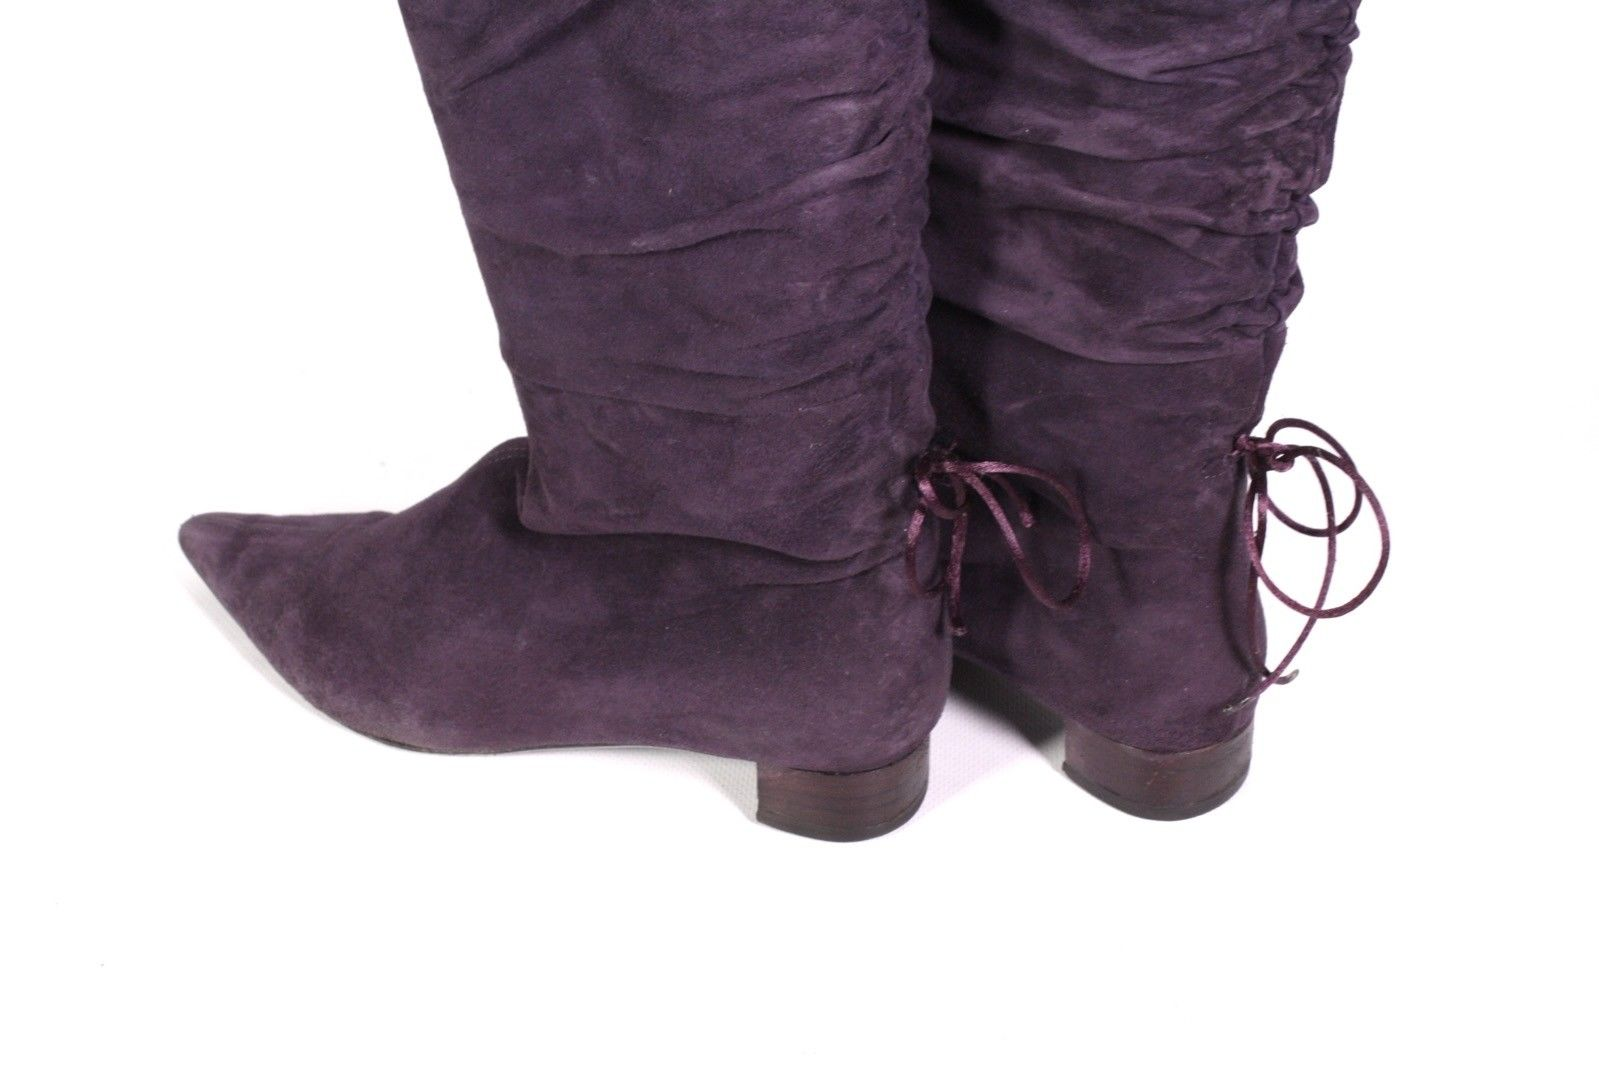 33S GUCCI Damen Stiefel Slouchy Boots weiches Leder Suede lila Gr. 36 spitz